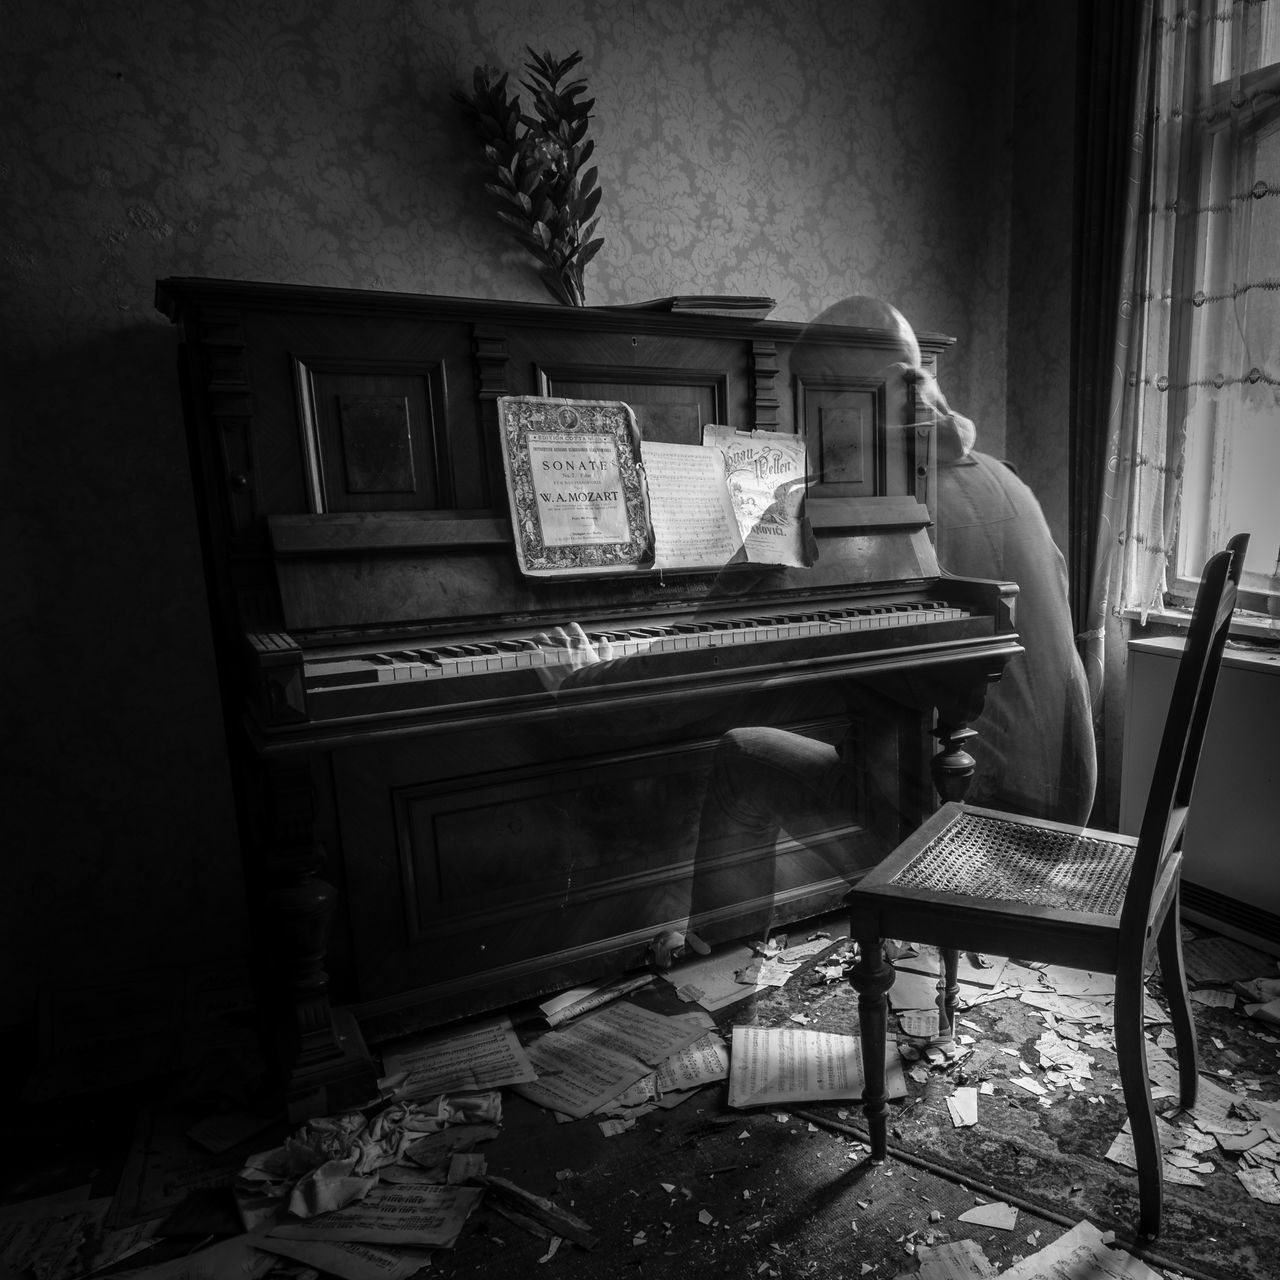 Abandoned Alone Black & White Black And White Blackandwhite Ghost Grief Instrument Instruments Klavier Long Exposure Long Exposure Shot Lost Places Music Music Instrument Noir Peaceful Person Piano Piano Moments Piano Player